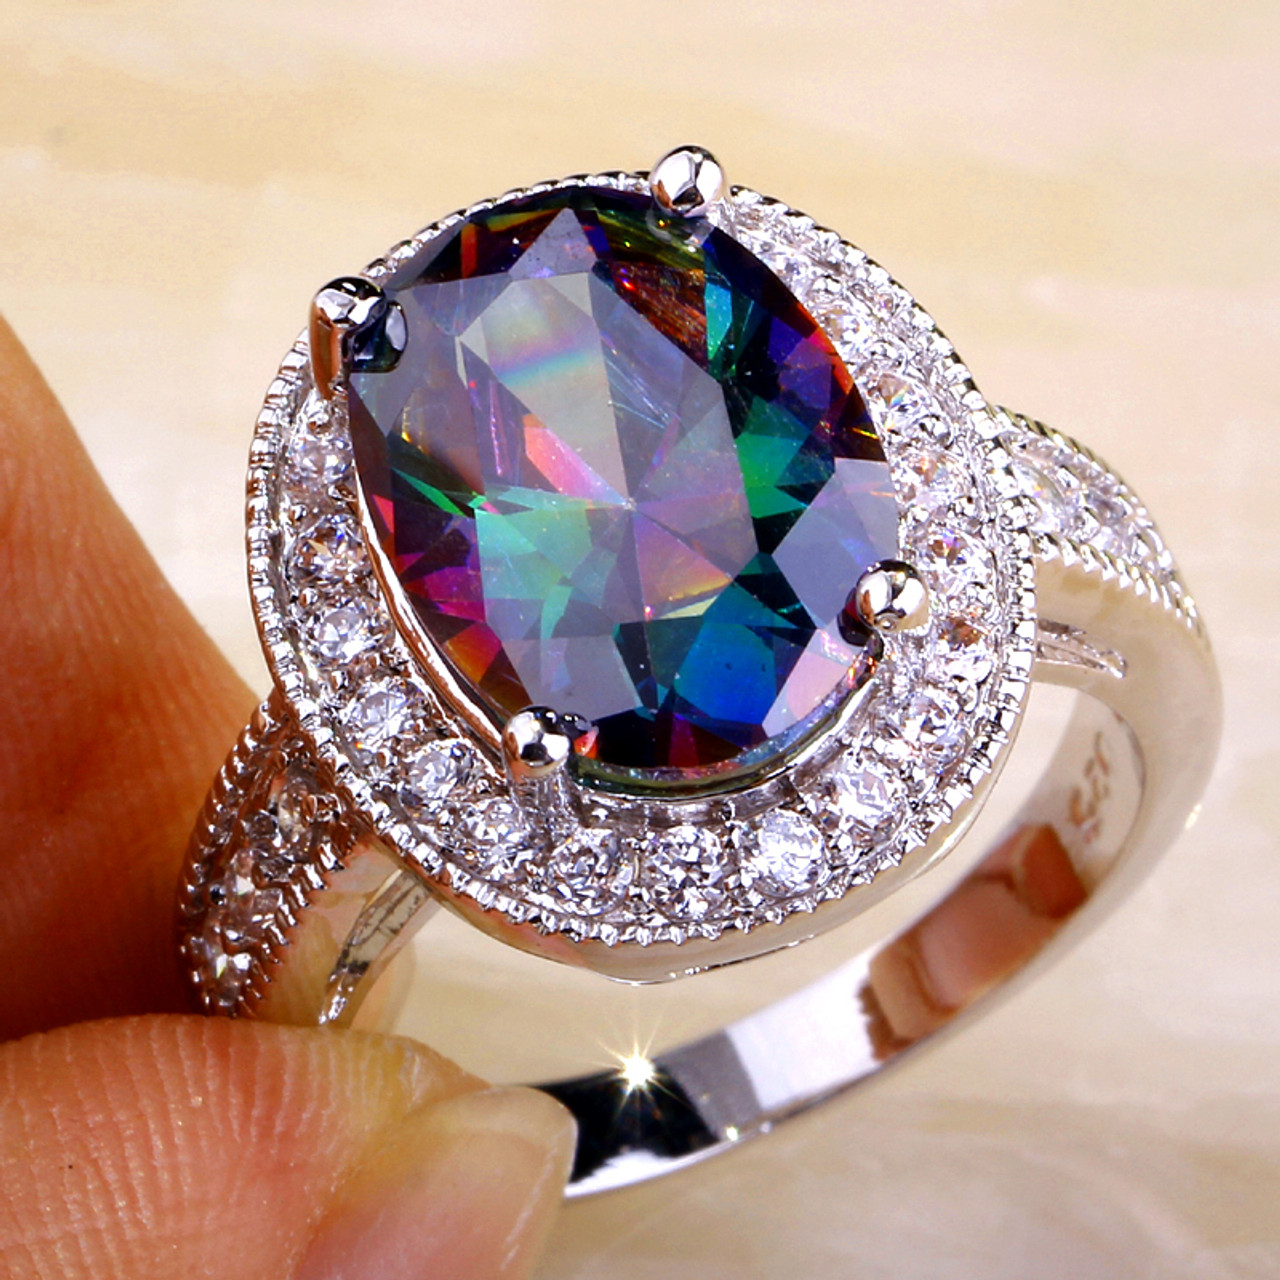 real genuine rainbow engagement solitaire promise rings somgsdj ring mystic diamond topaz popular wedding